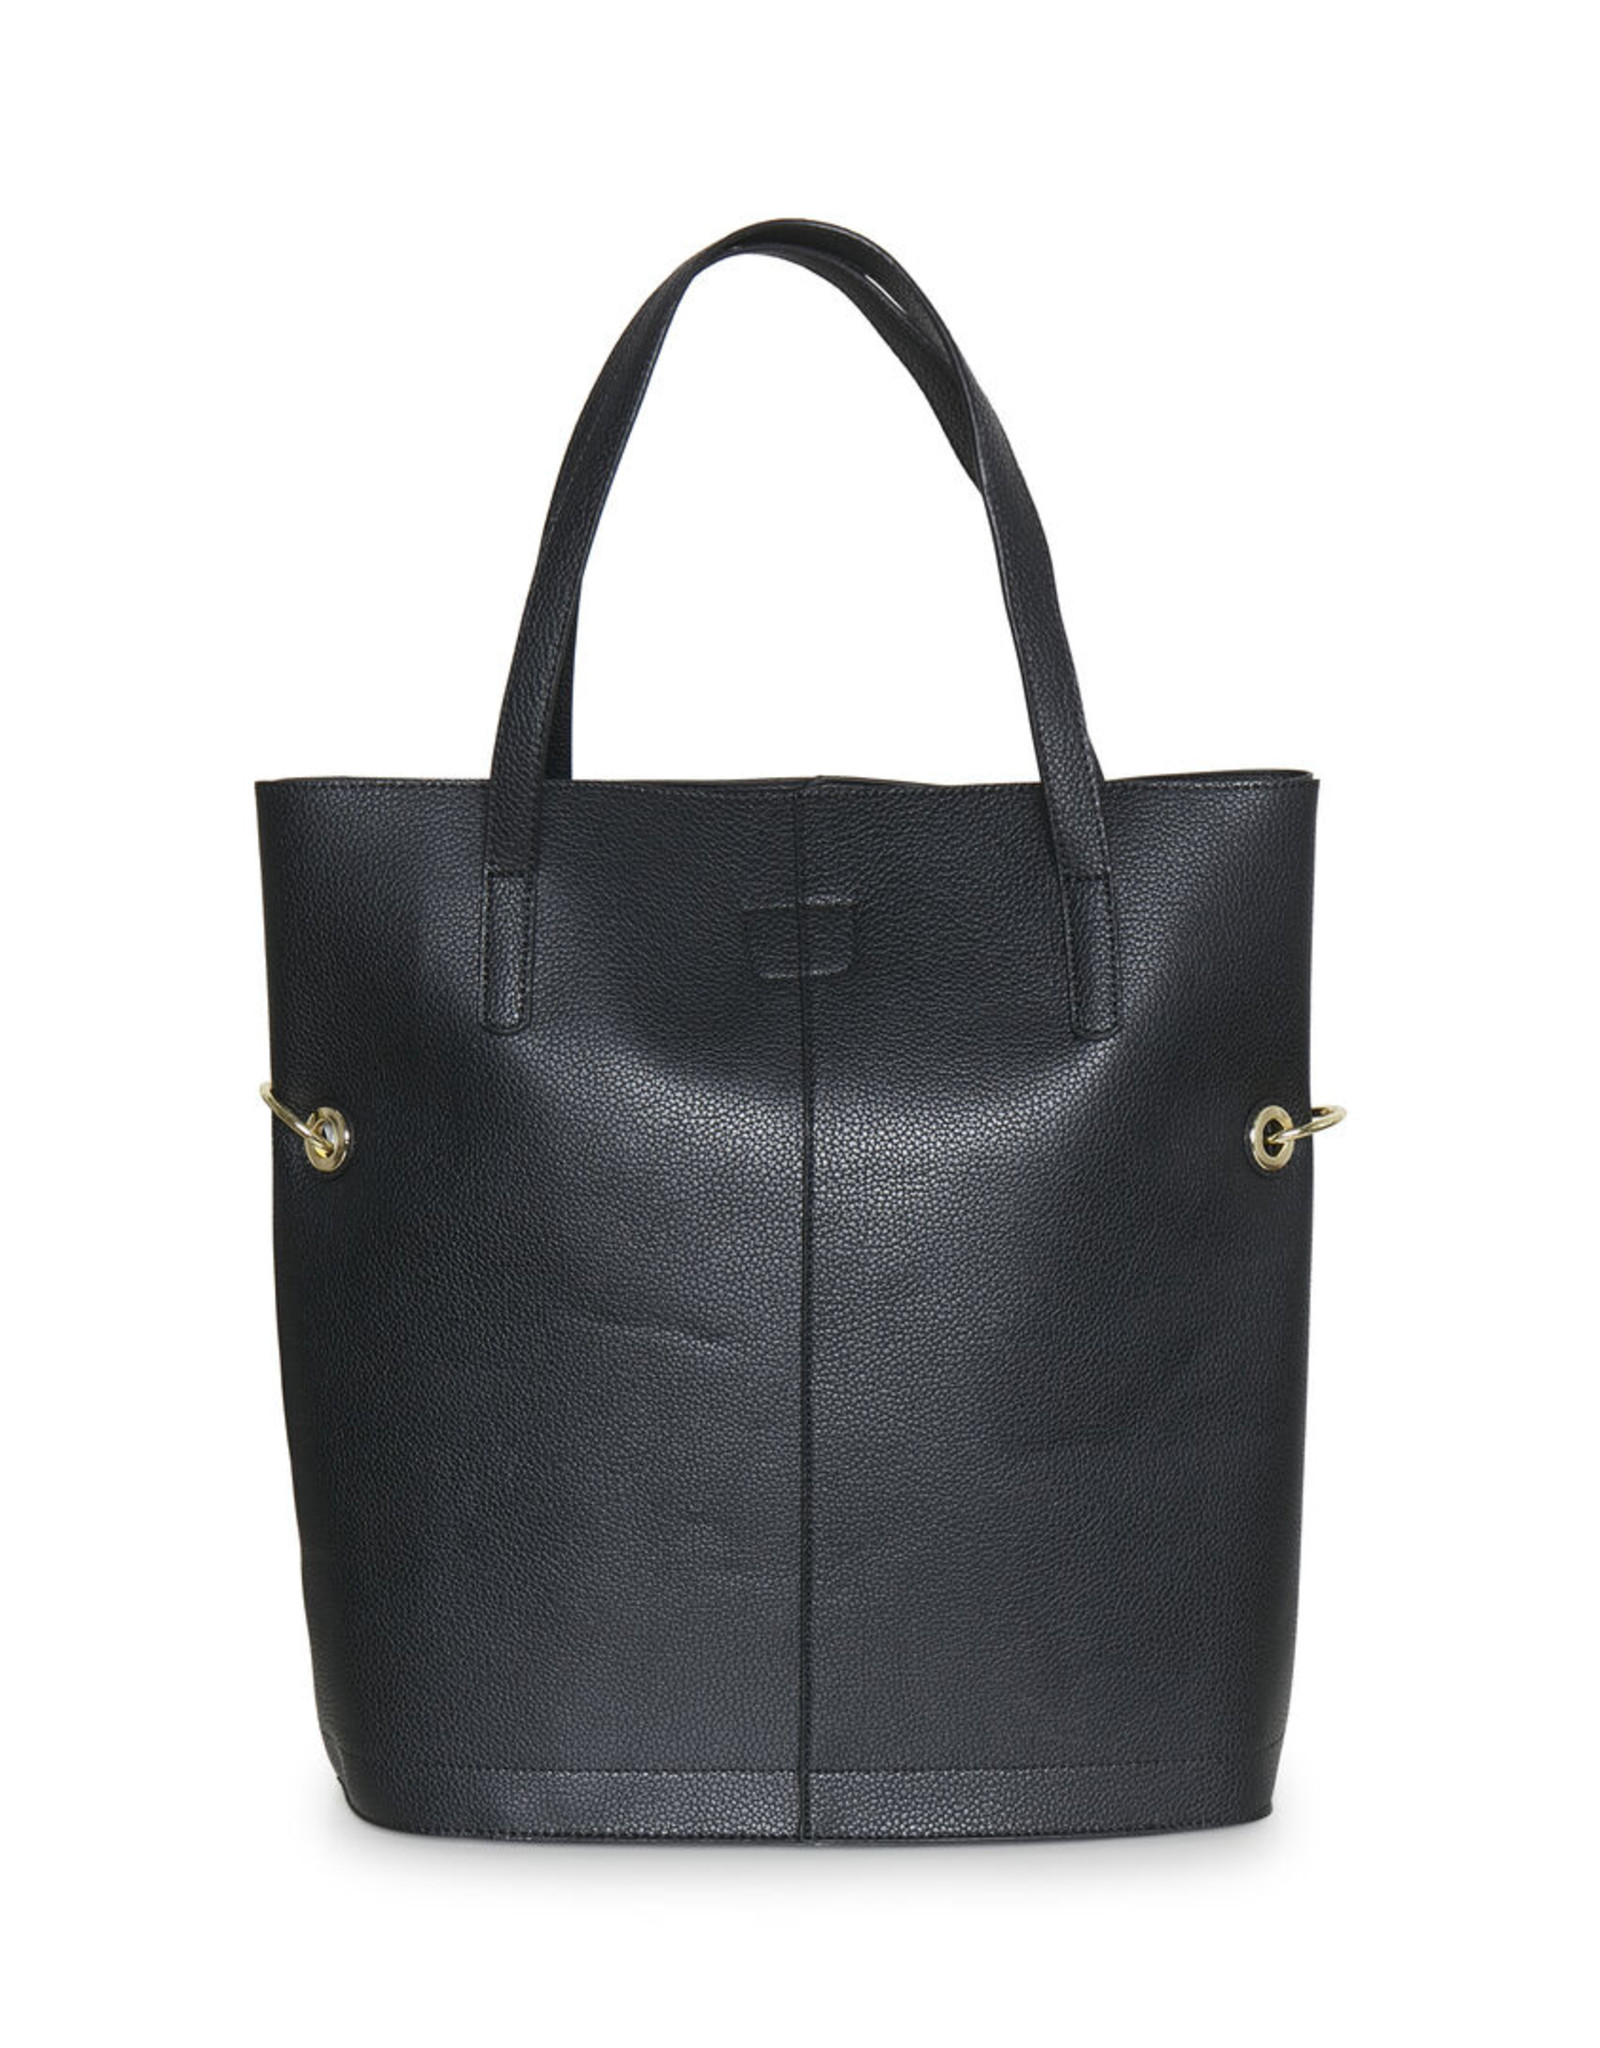 Karen by Simonsen Dori Tote Bag